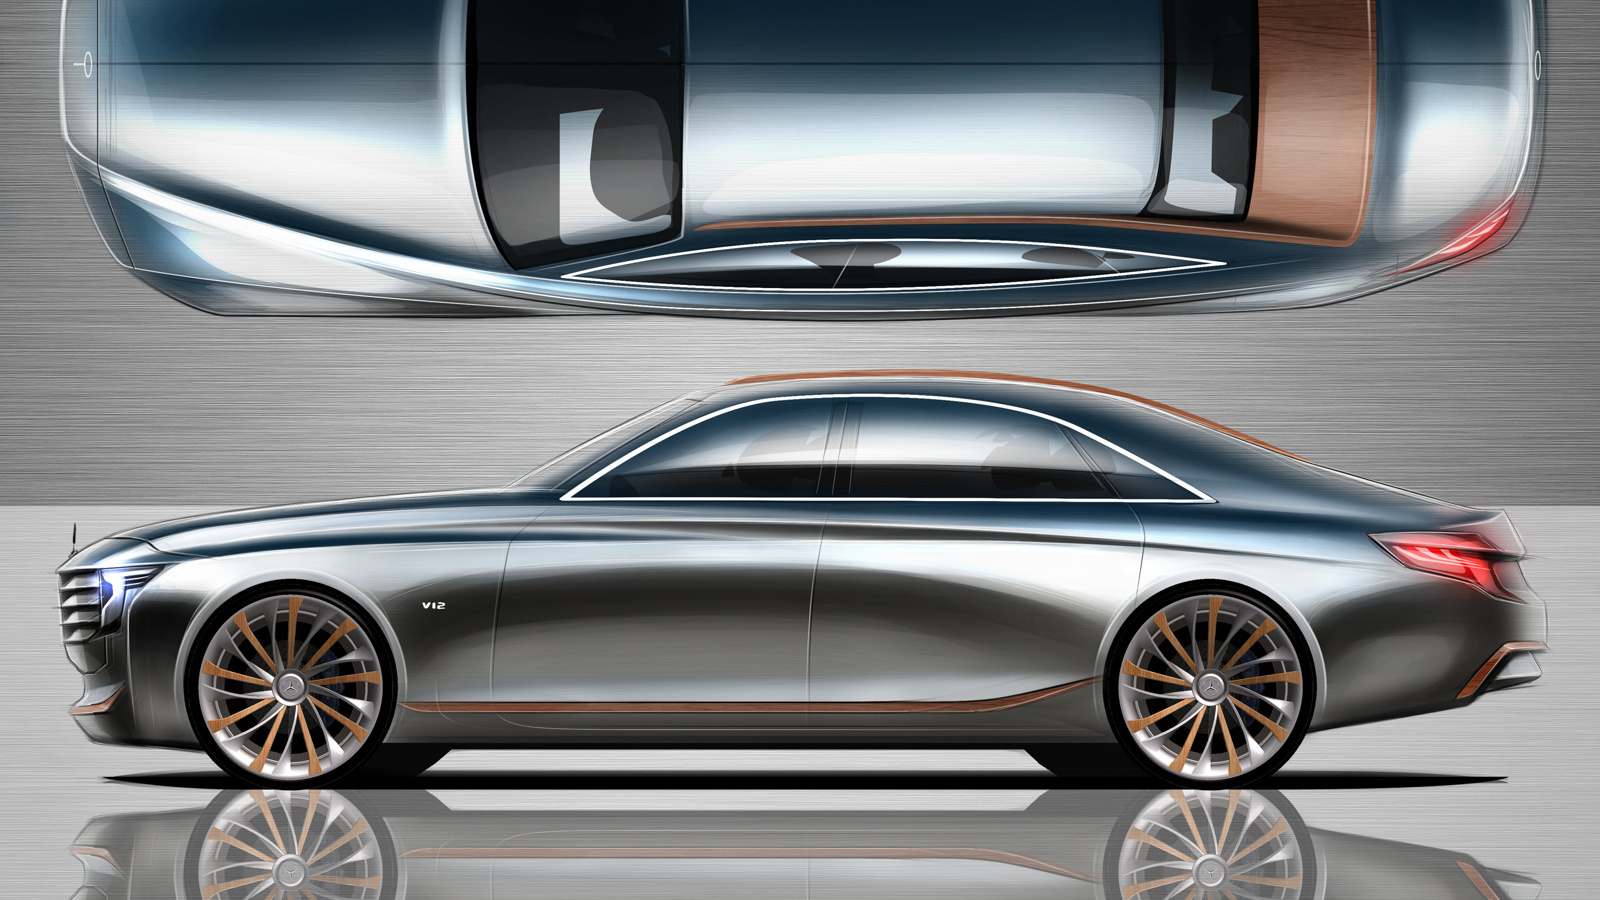 2021 Mercedes Benz U Class Concept Proposed By A Design